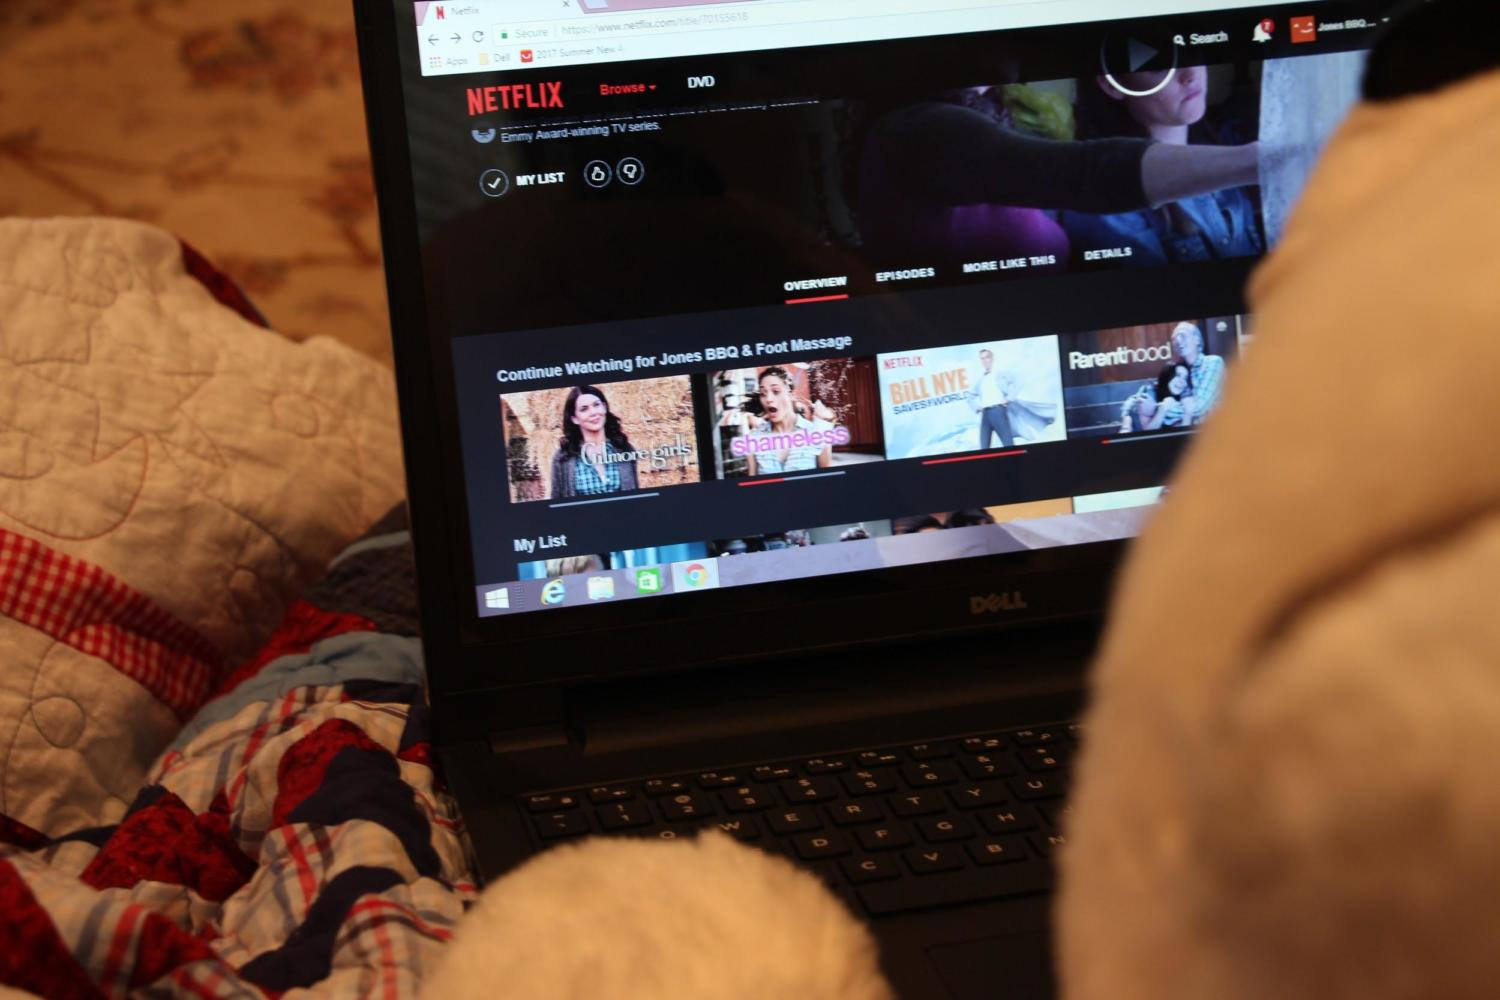 """Step four: Browse through the different shows and movies on Netflix to find one that piques your interest. Pick the one that intrigues you the most because you don't want to watch a show that's not your taste. Beary found the show """"Gilmore Girls"""" and decided that he'd watch that as his binge show."""